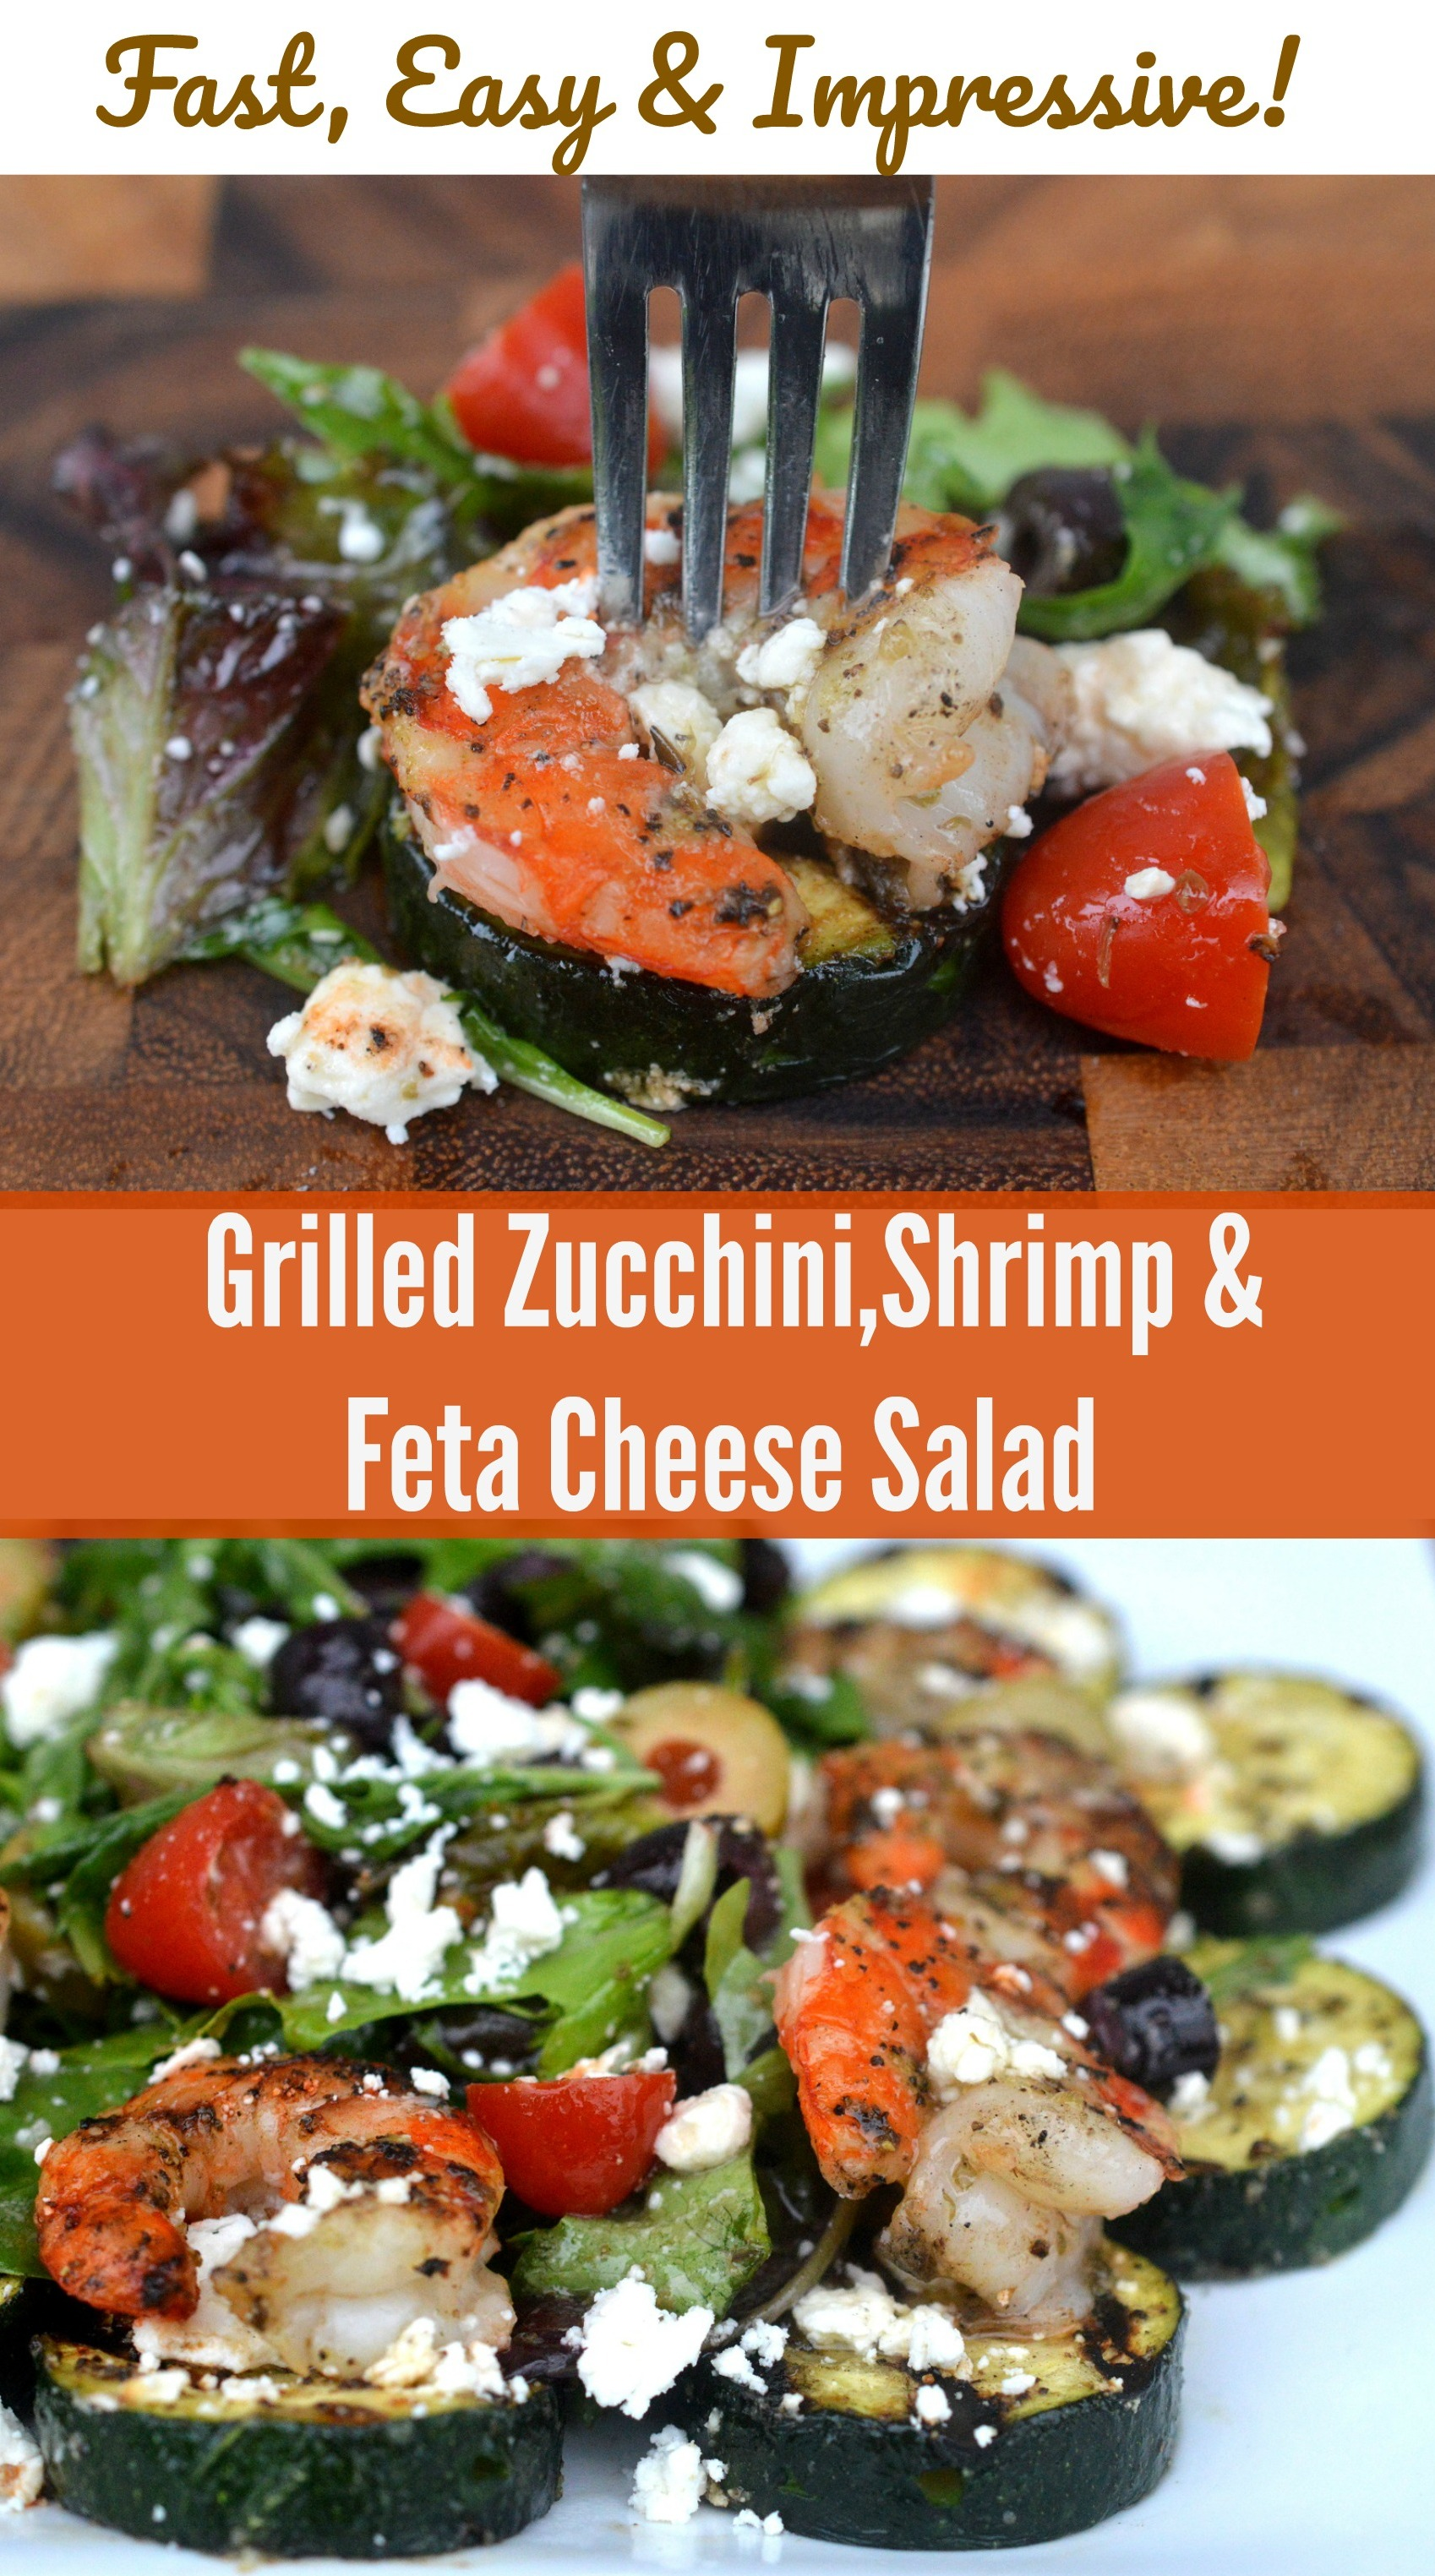 Fast Easy & Impressive Grilled Zucchini, Shrimp & Feta Cheese Salad